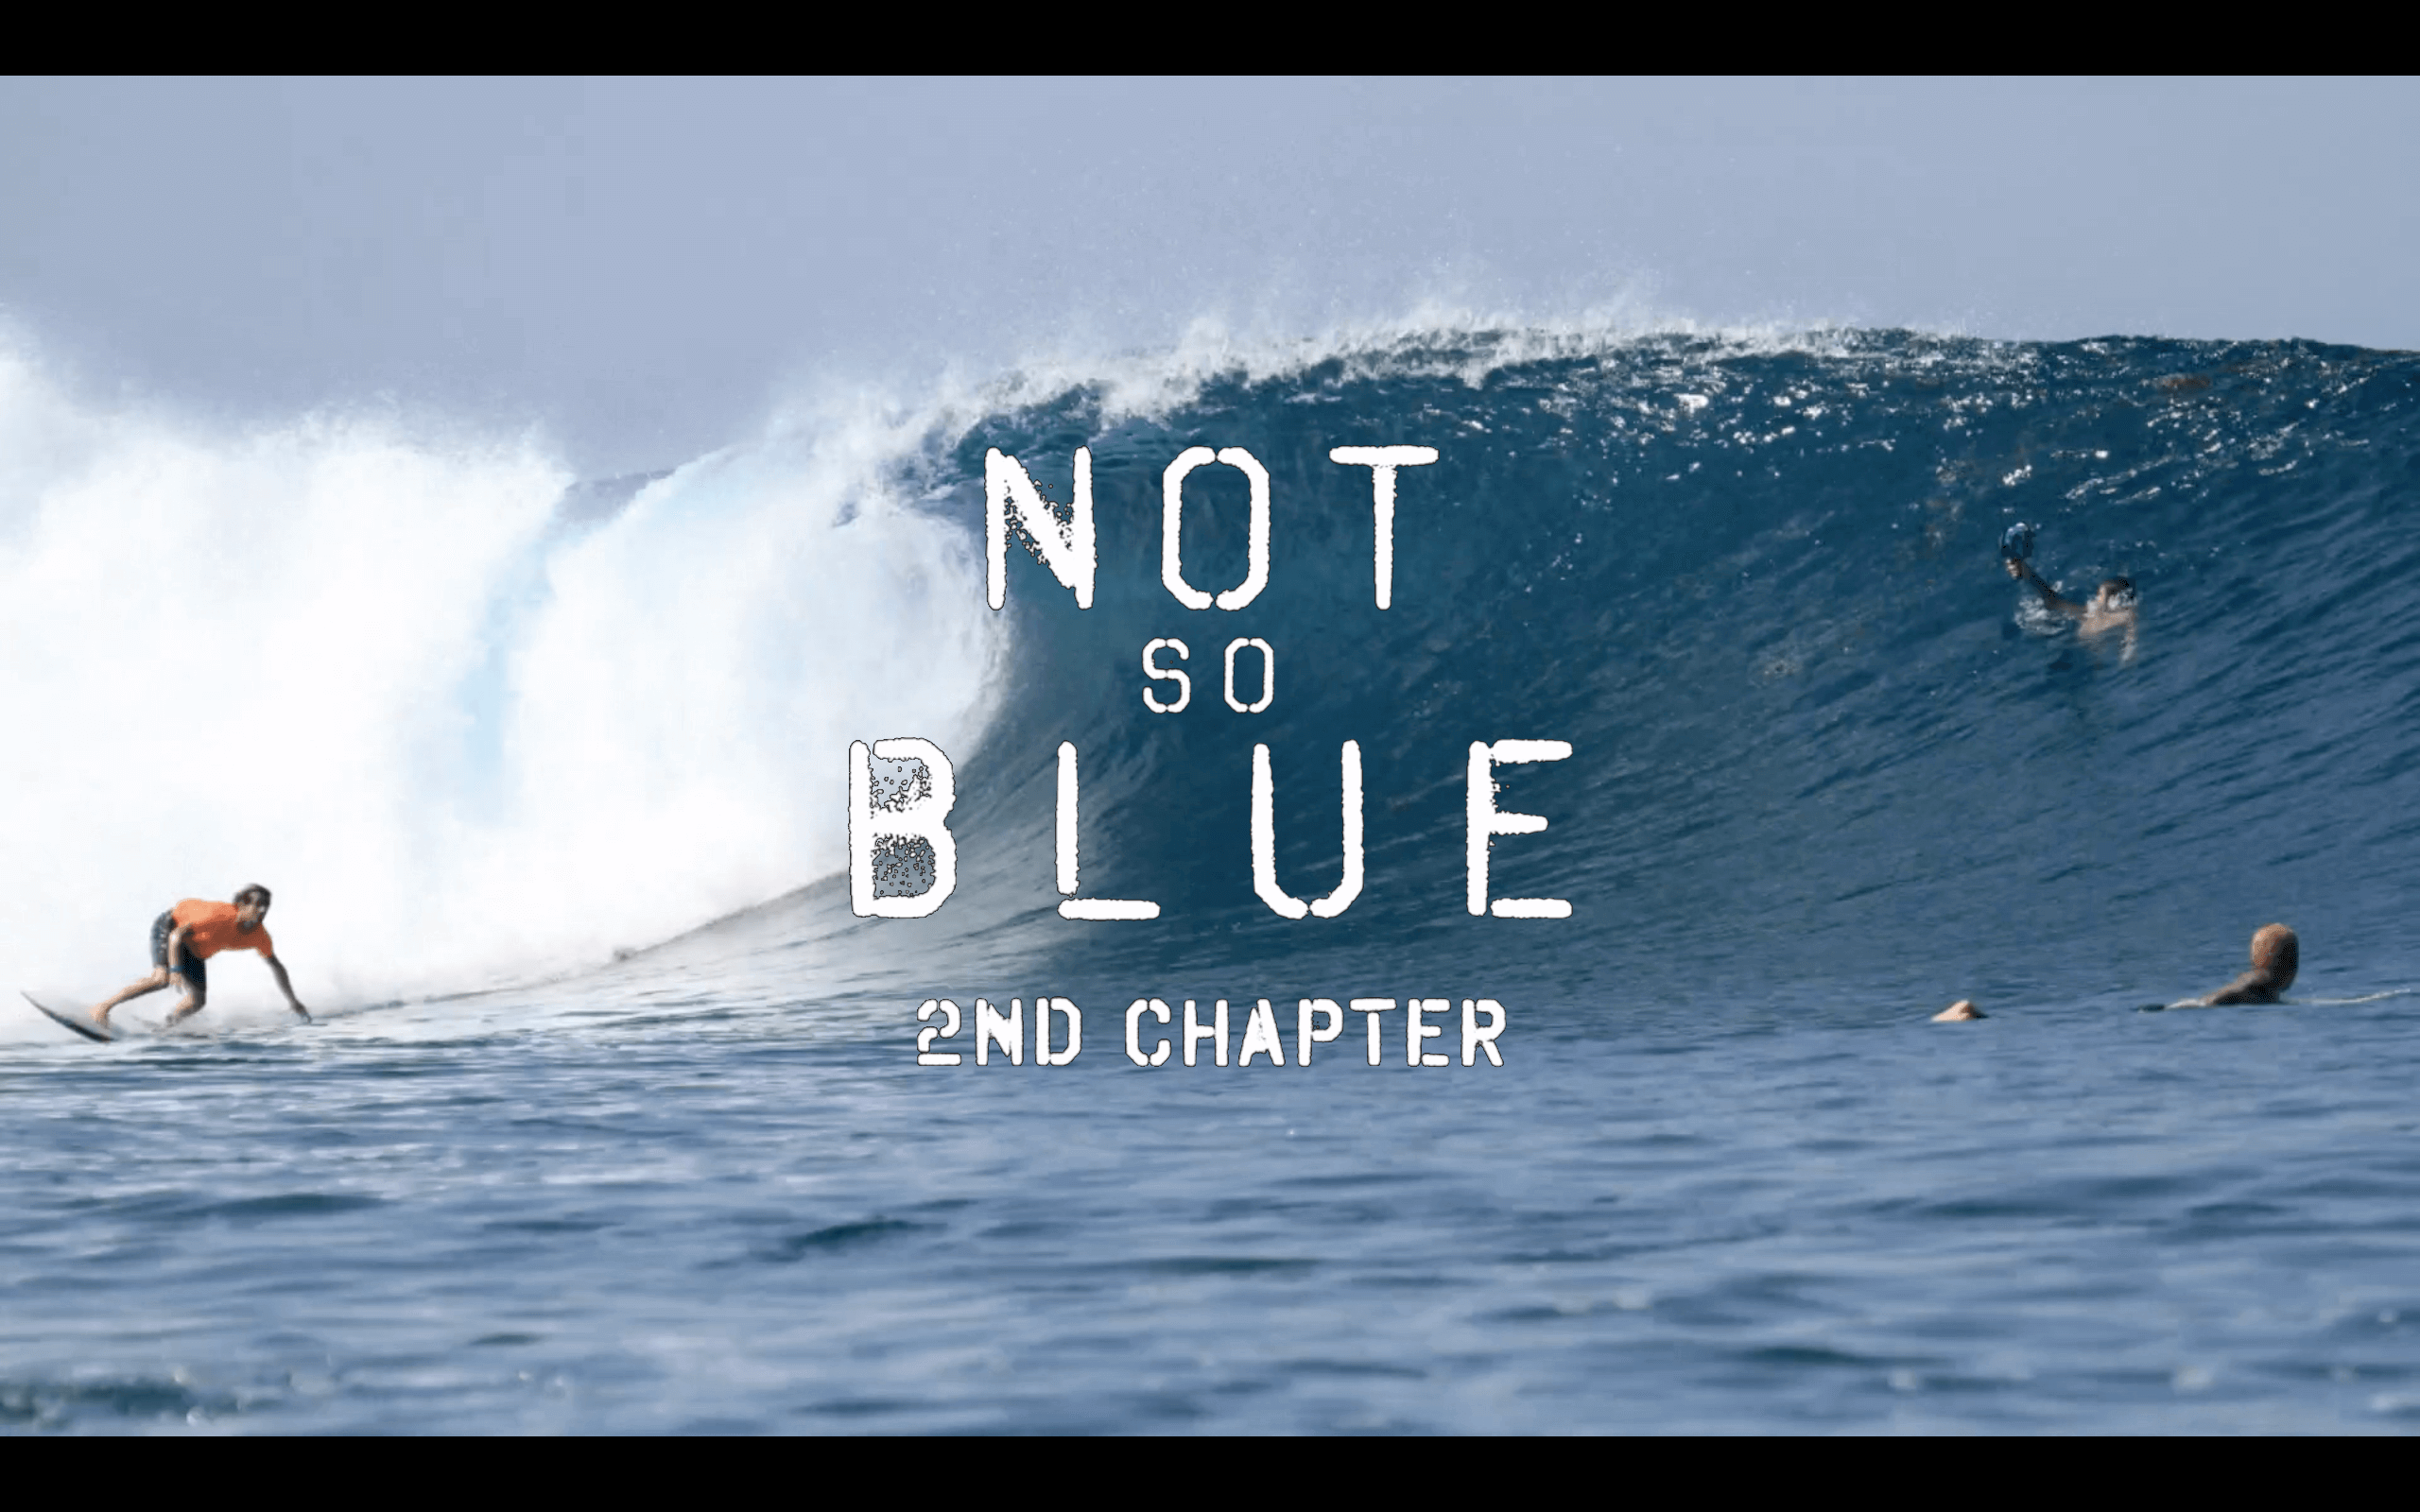 Not So Blue 2nd chapter